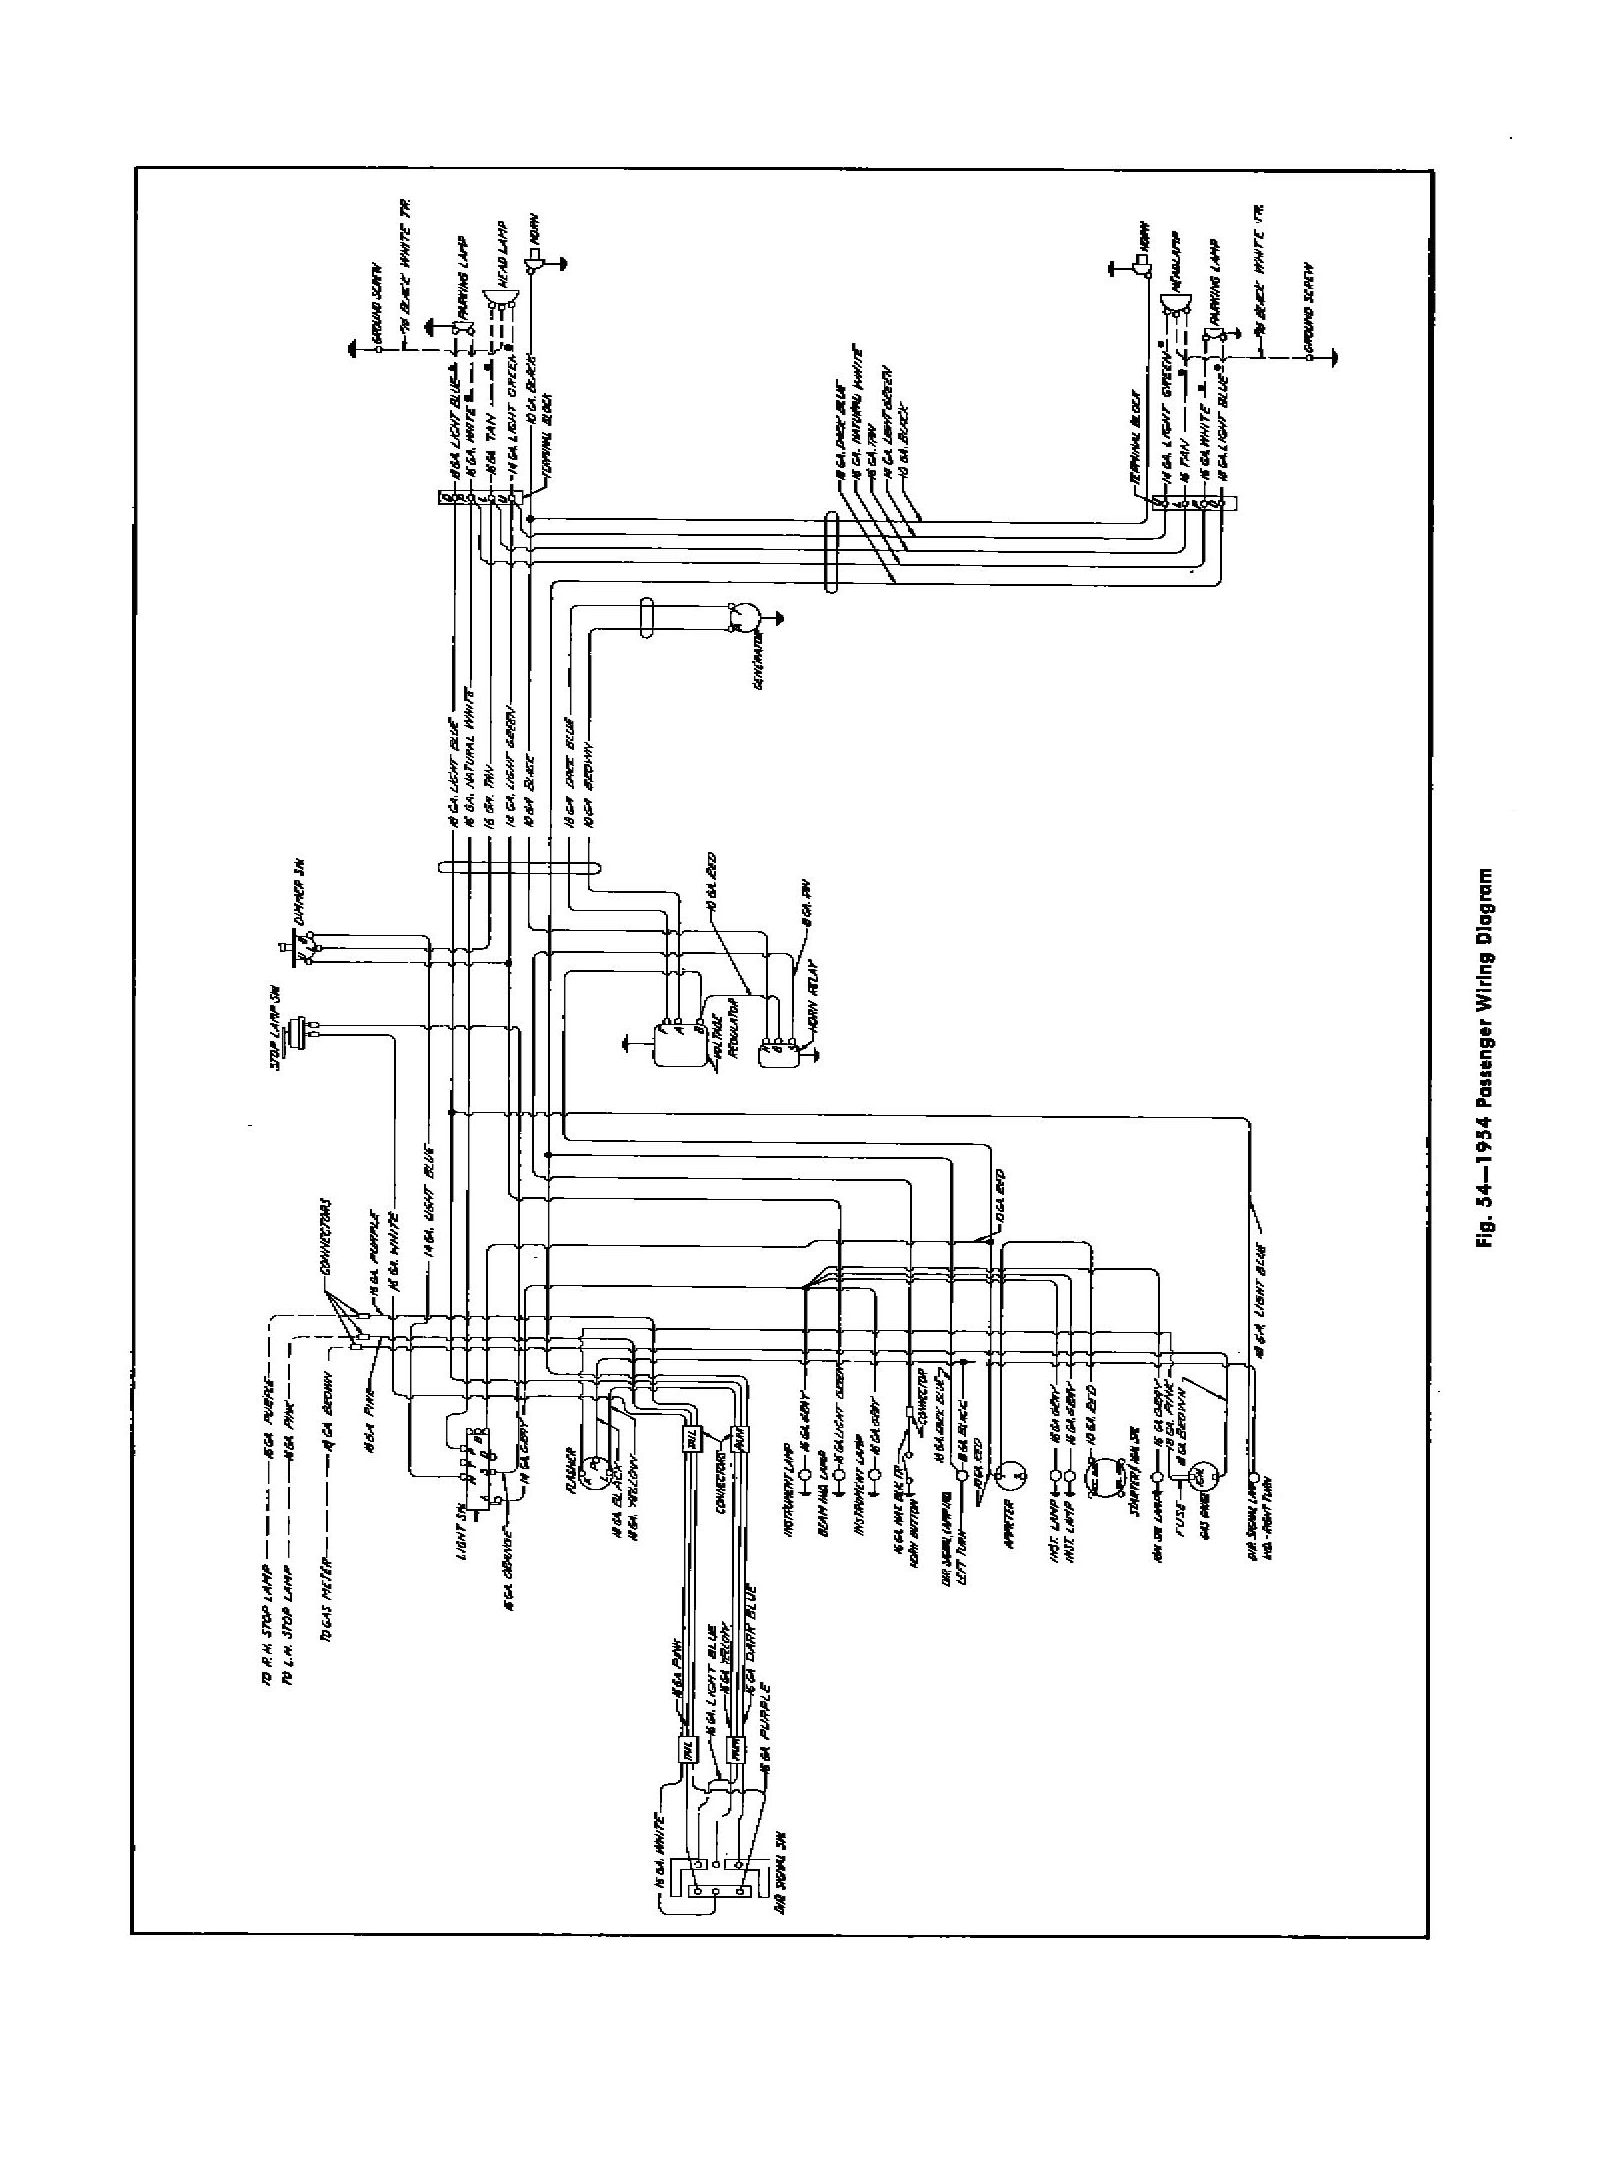 5d7af Chevy Pickup Wiring Diagram